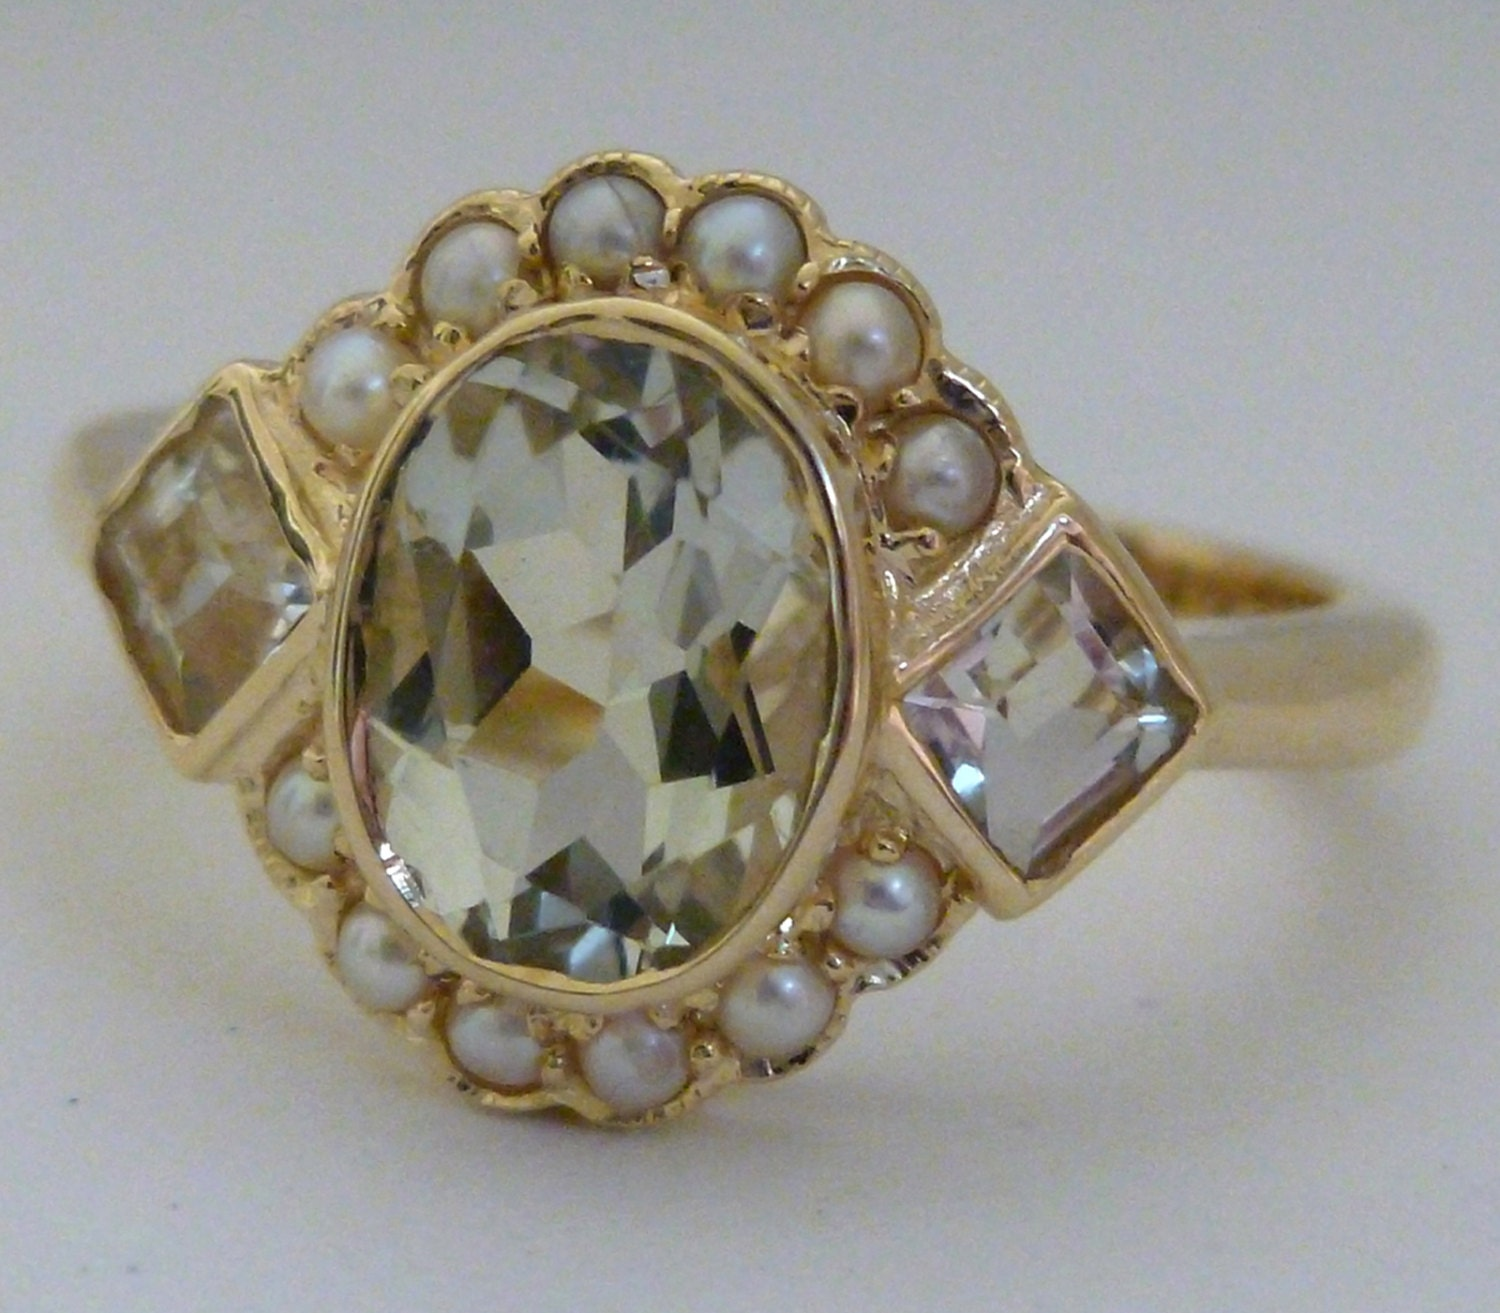 amethyst ring vintage - photo #6